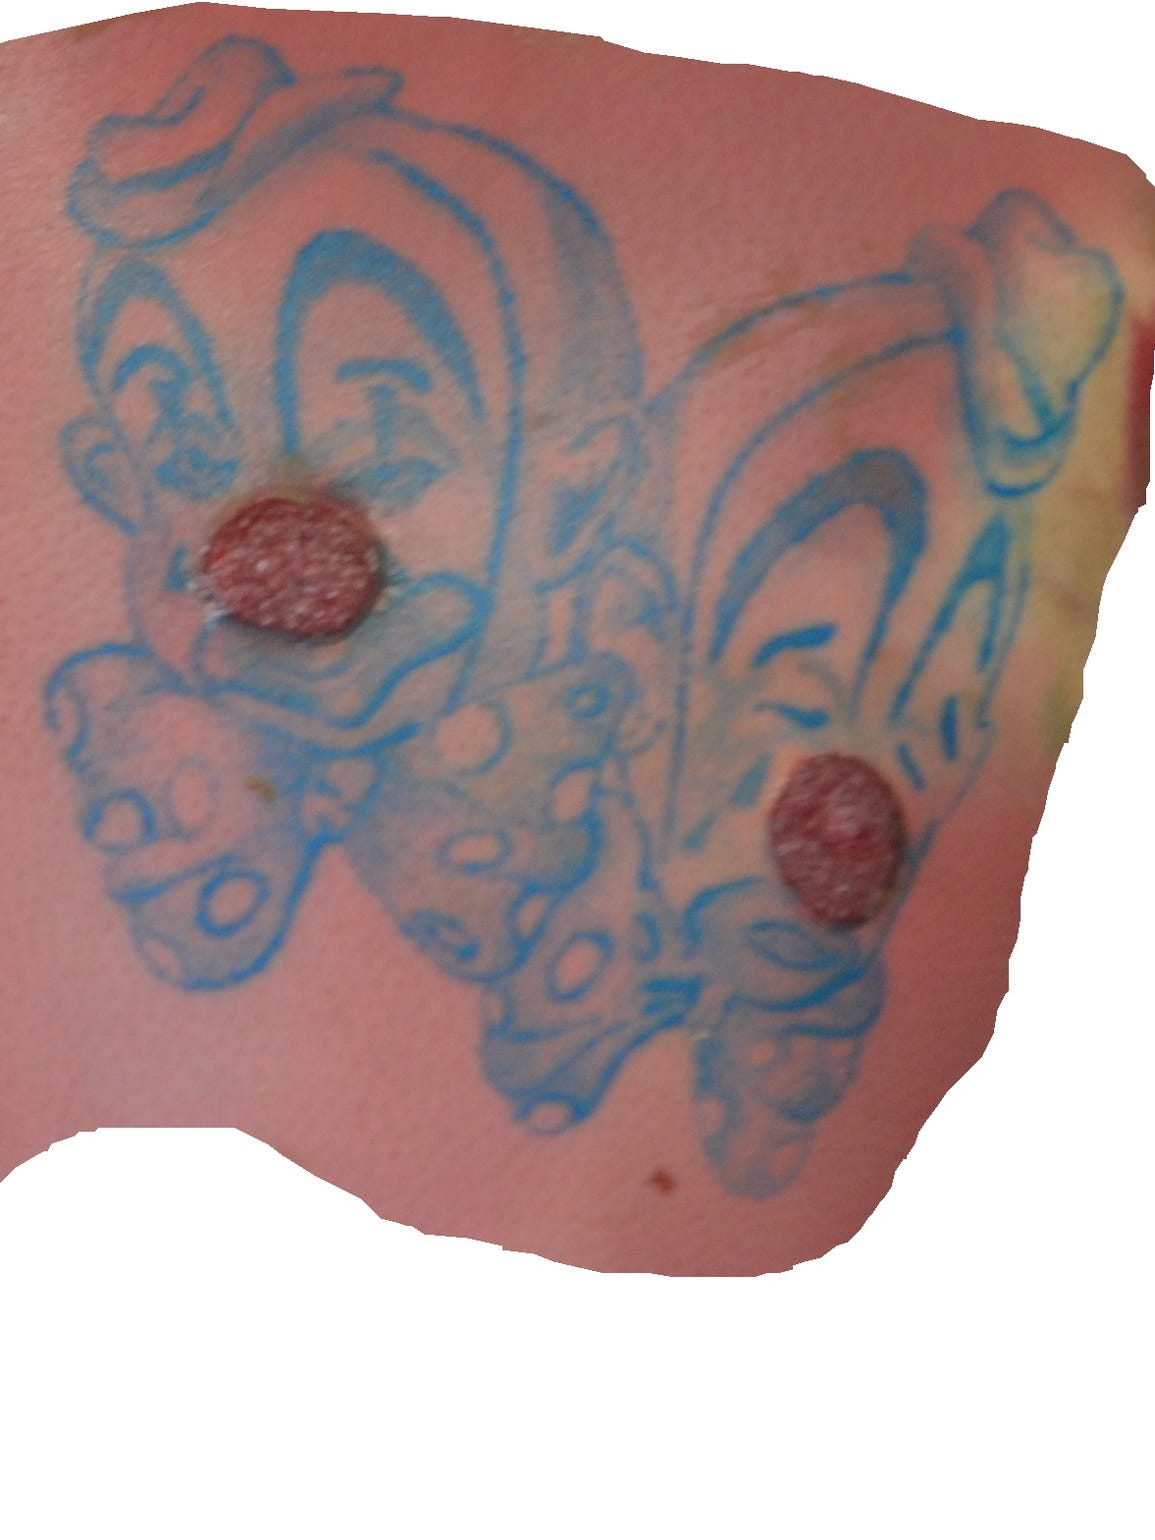 This distinctive clown tattoo was found on an unidentified